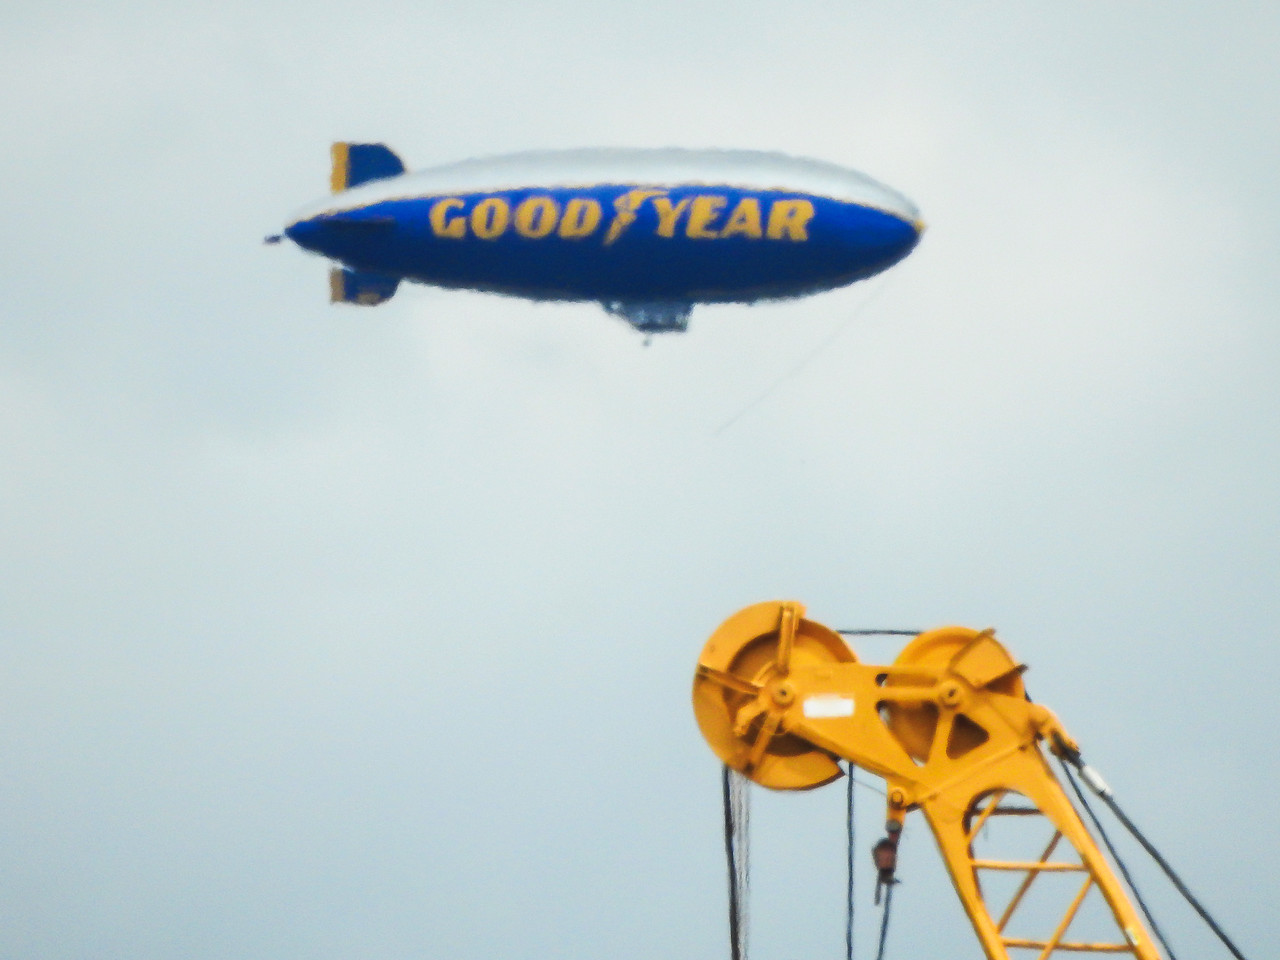 Goodyear, Blimp